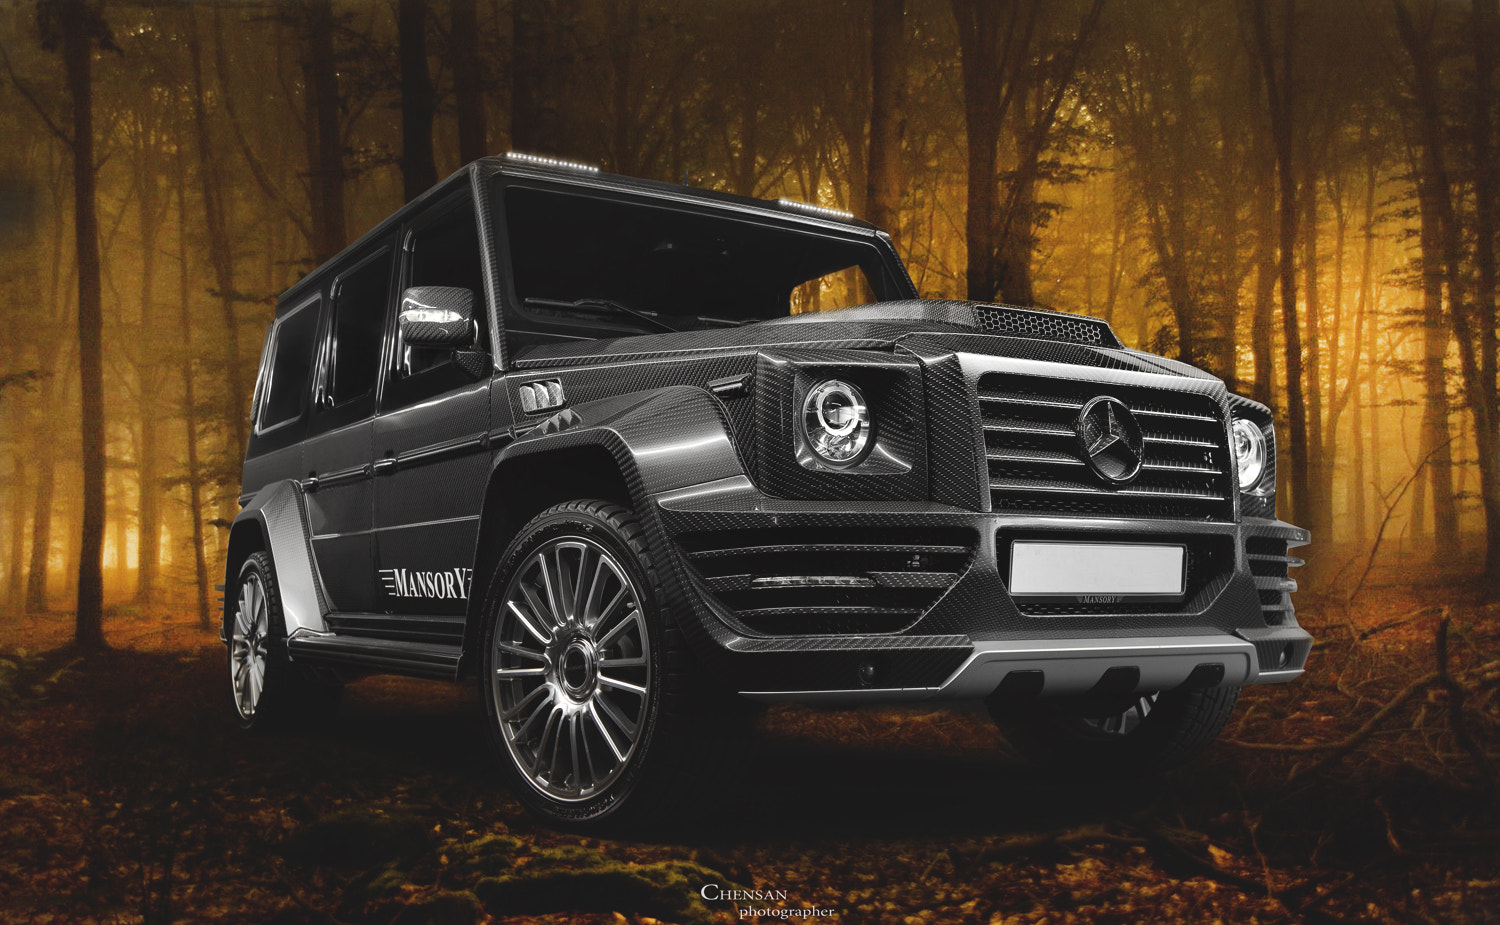 Photograph Mersedes G-class MANSORY G-couture SPECIAL EDITION 02/07 . by philip plein ,photo by Chensan by  Chensan on 500px